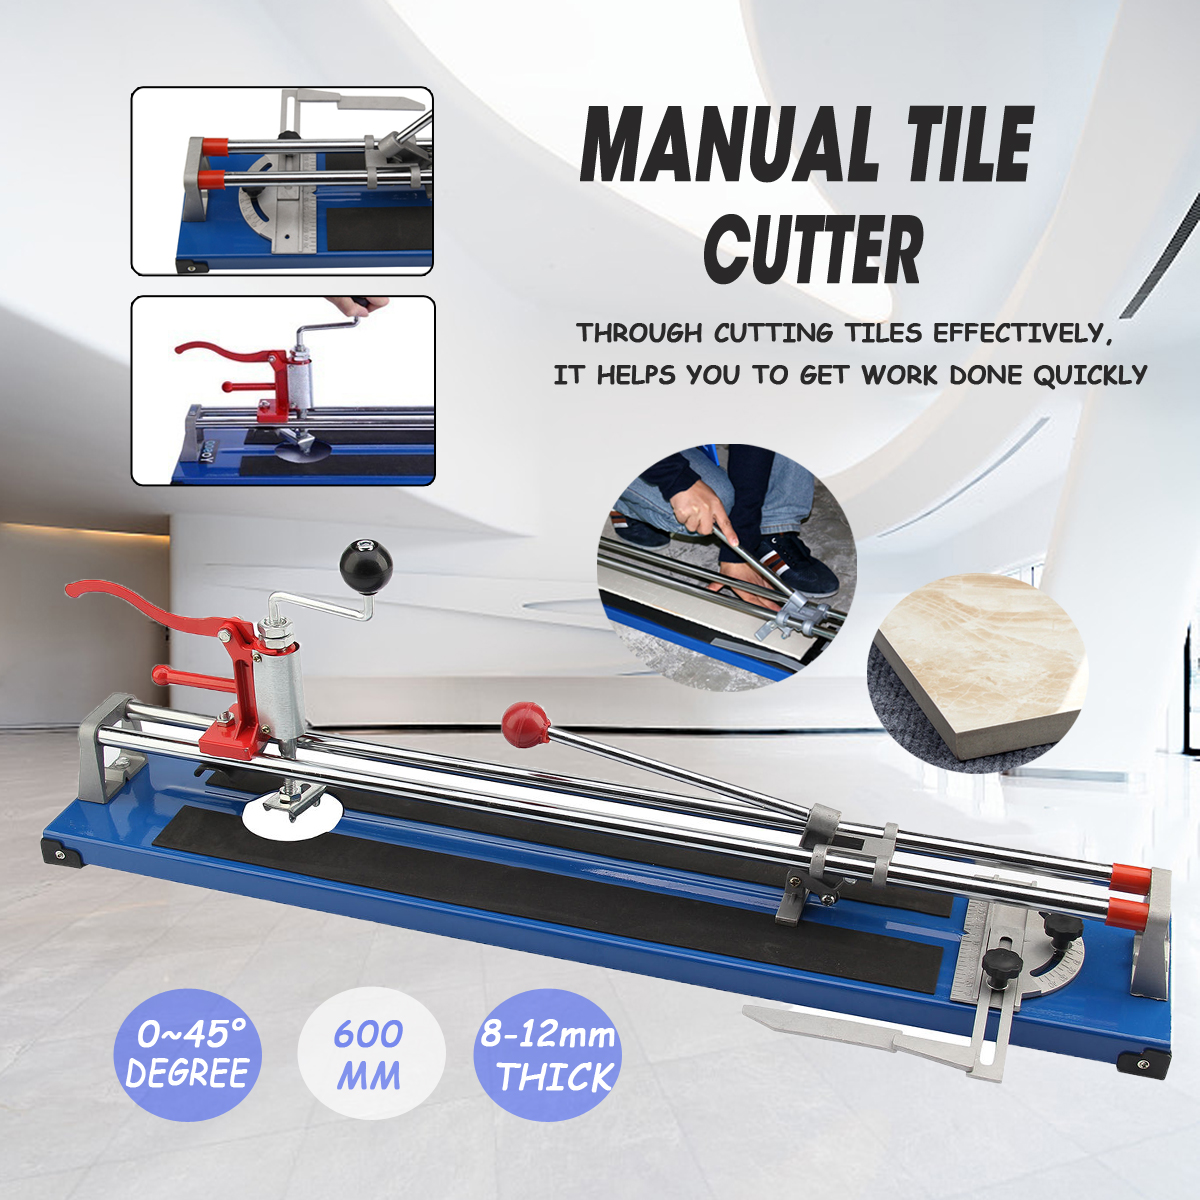 Doersupp 600mm Heavy Duty Ceramic Floor Wall Tile Hand Cutter Cutting Shaper Machine Tool Portable Cutting Machine